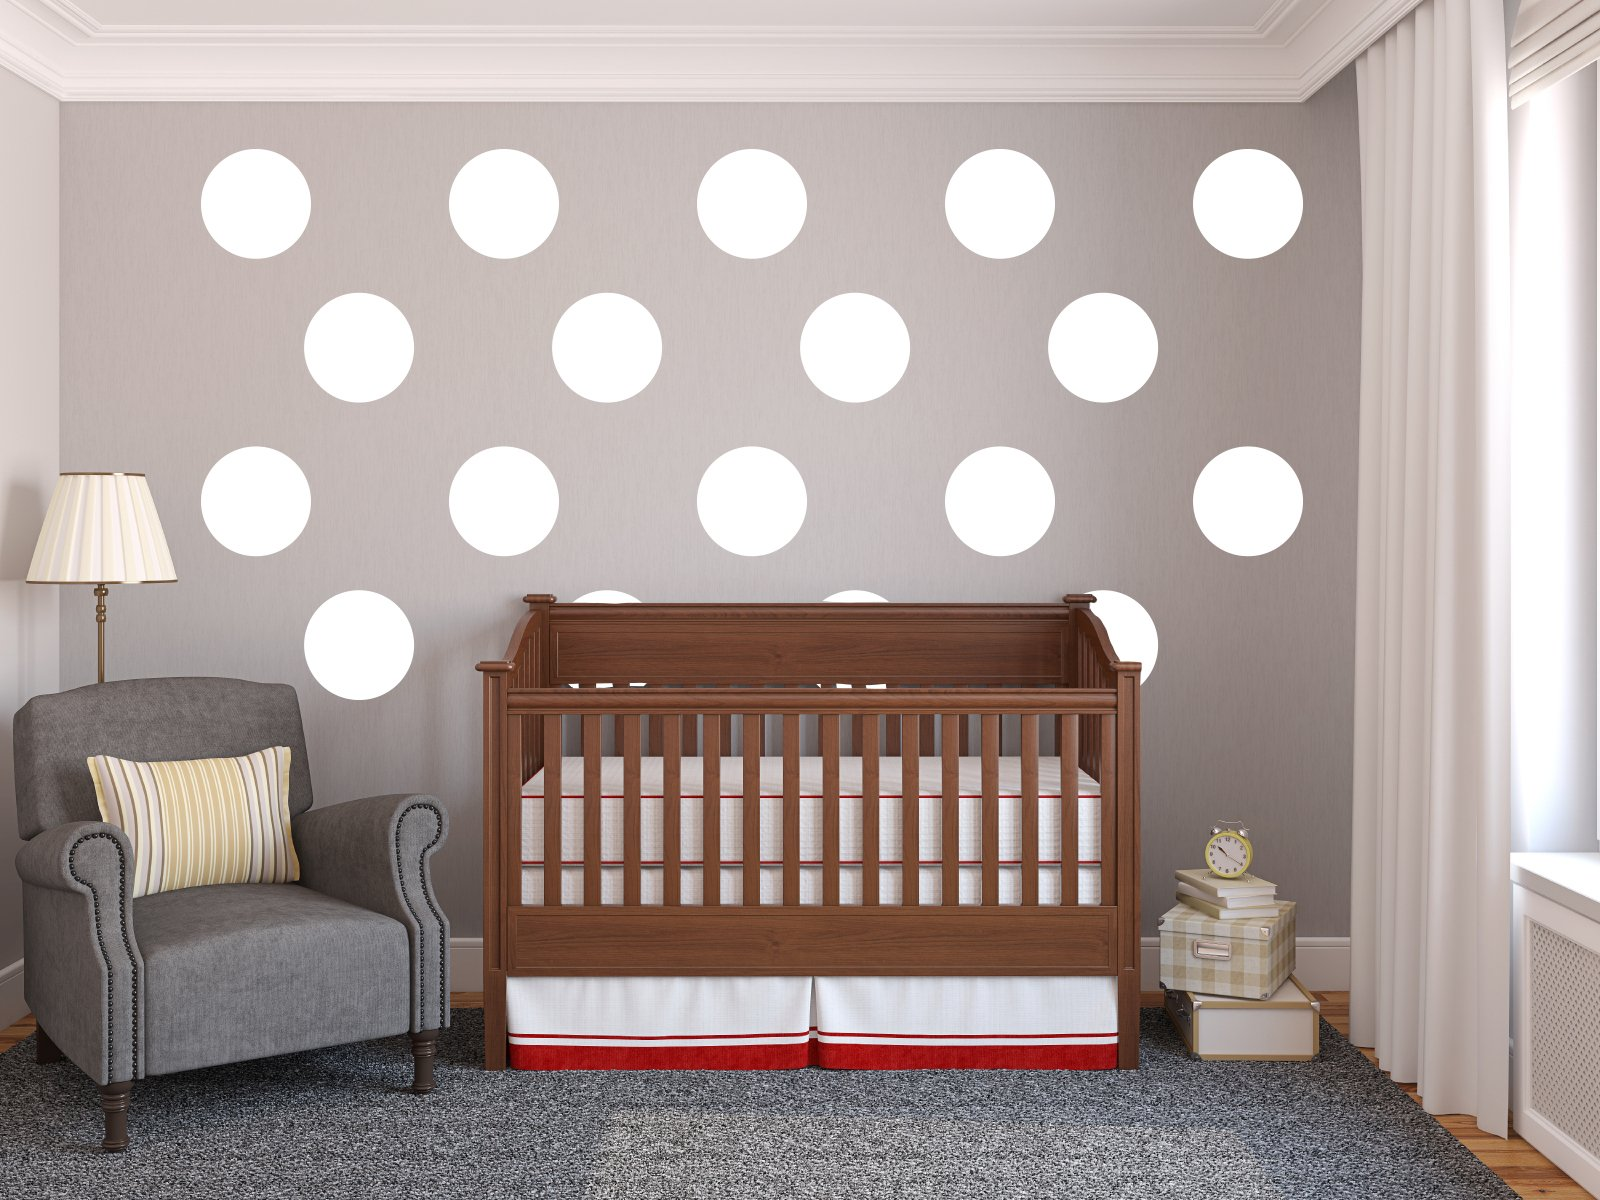 Large Wall Polka-Dots (18-12'') - Vinyl Wall Art Decal for Homes, Offices, Kids Rooms, Nurseries, Schools, High Schools, Colleges, Universities